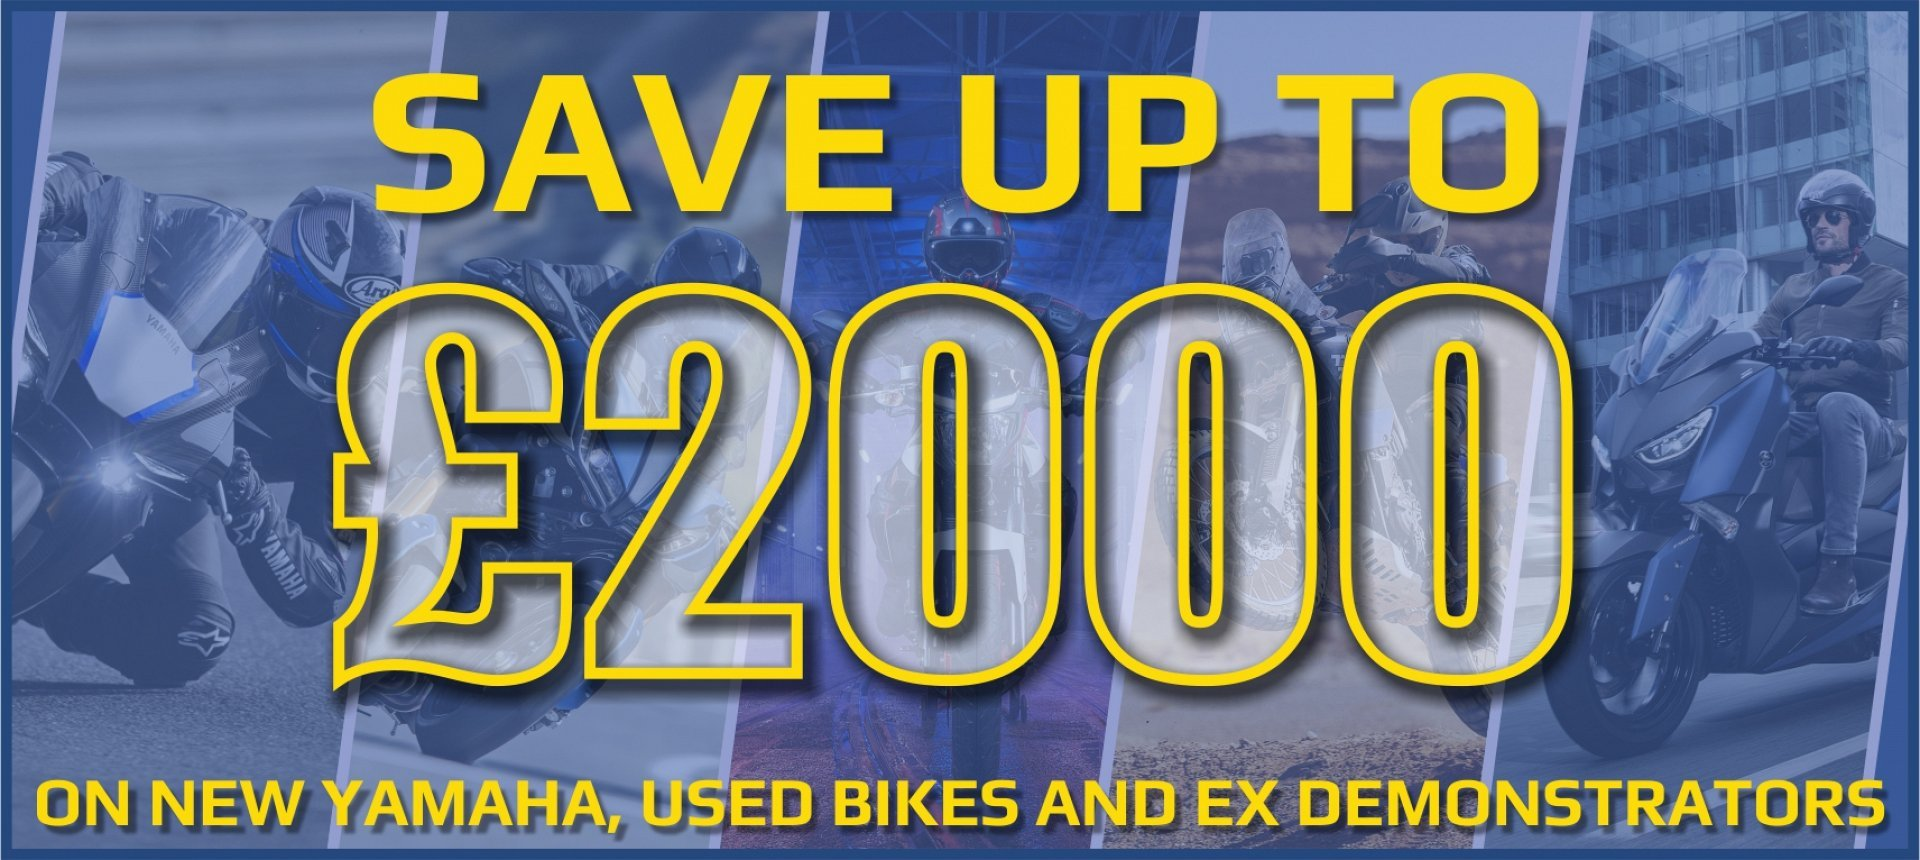 Save up to £2000 on New Yamahas and Used Bikes